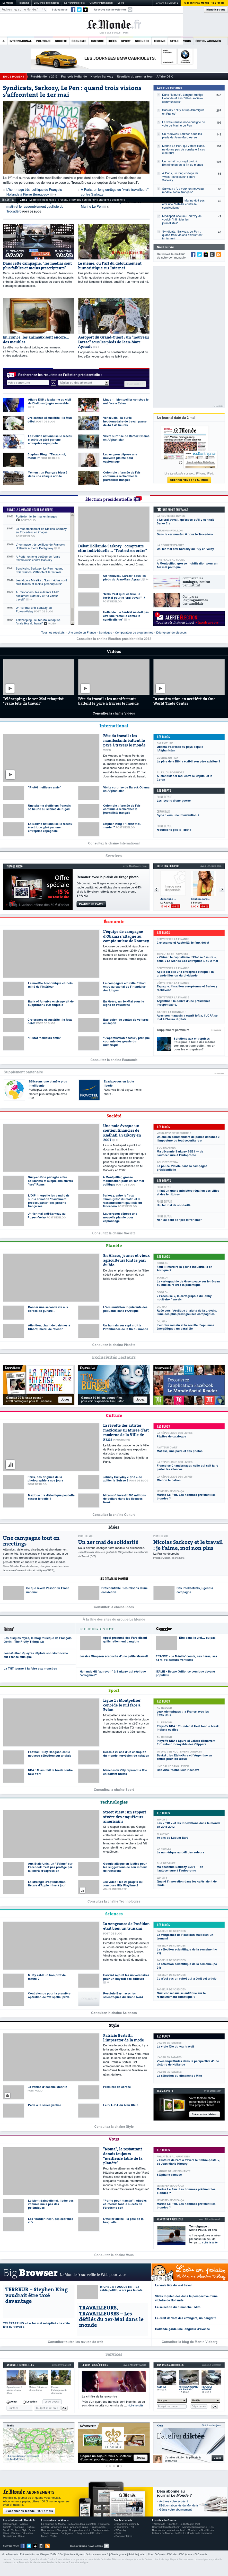 Le Monde at Wednesday May 2, 2012, 2:09 a.m. UTC